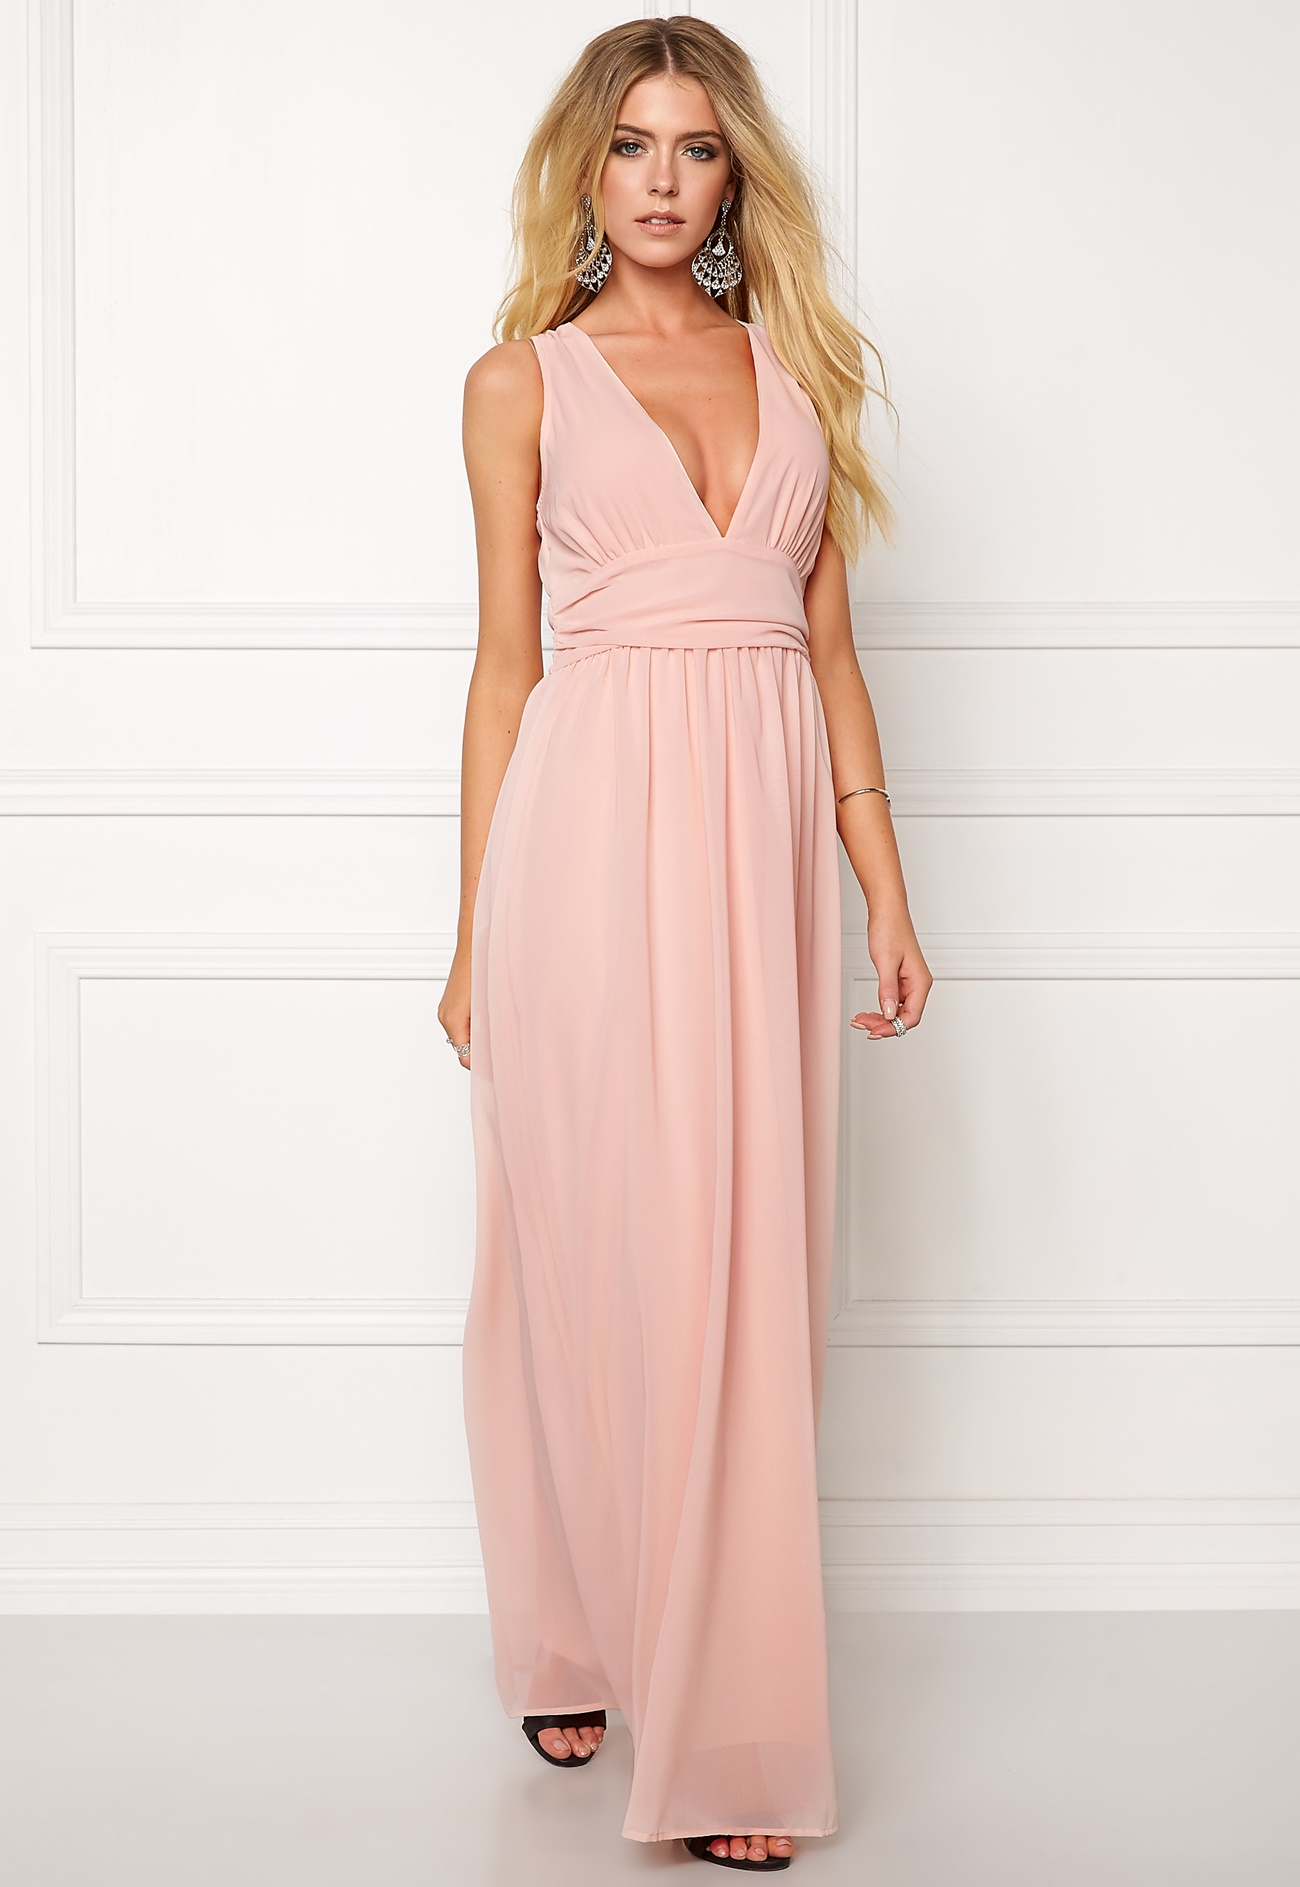 Free shipping and returns on Women's Pink Dresses at topinsurances.ga